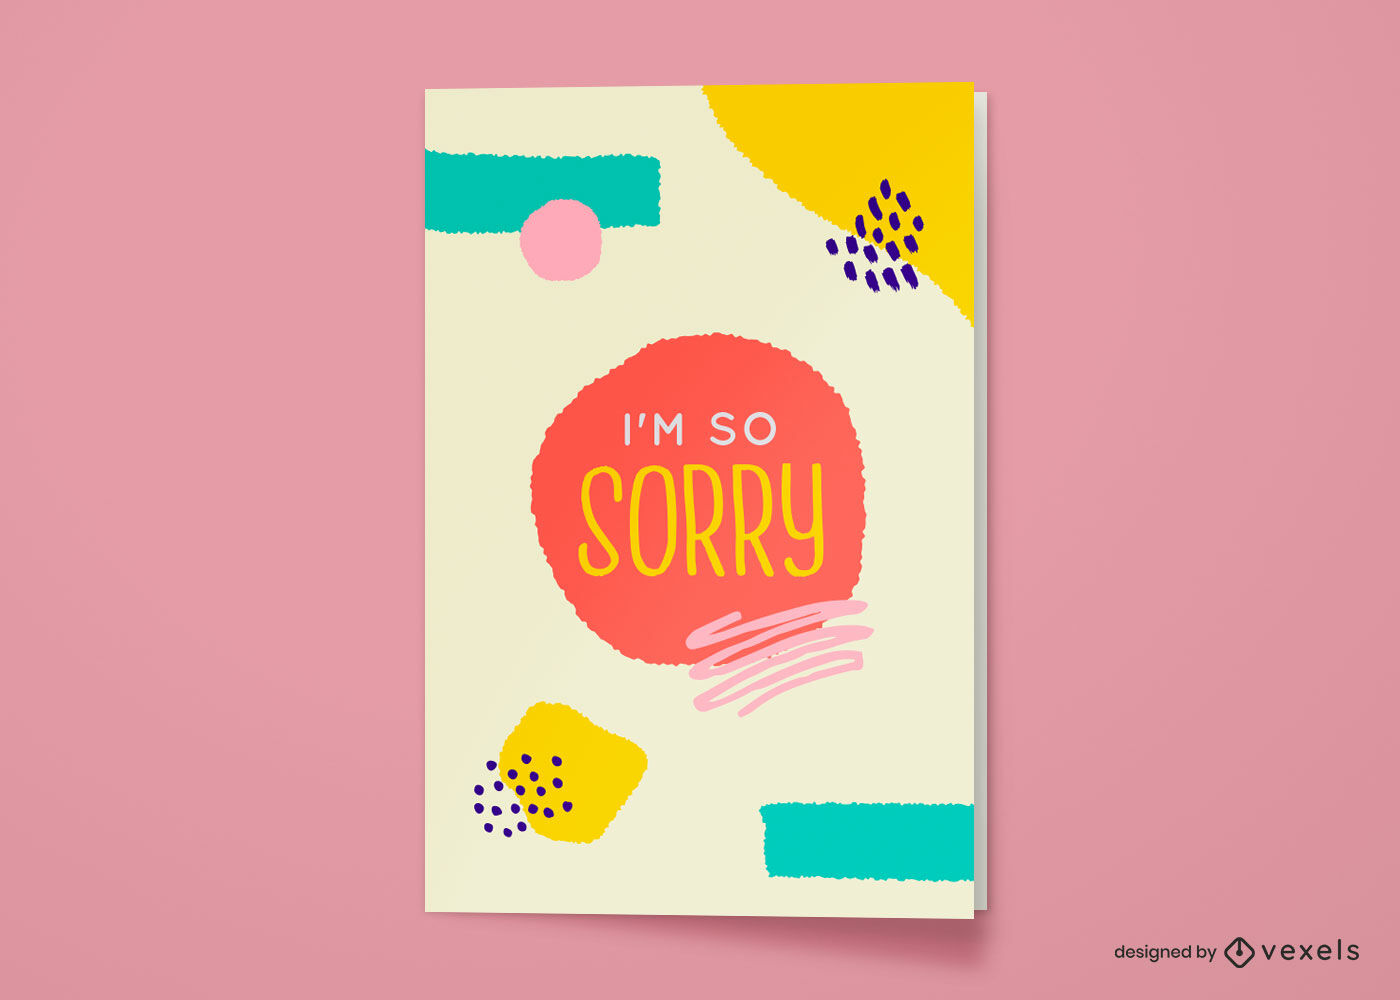 I'm so sorry greeting card abstract design